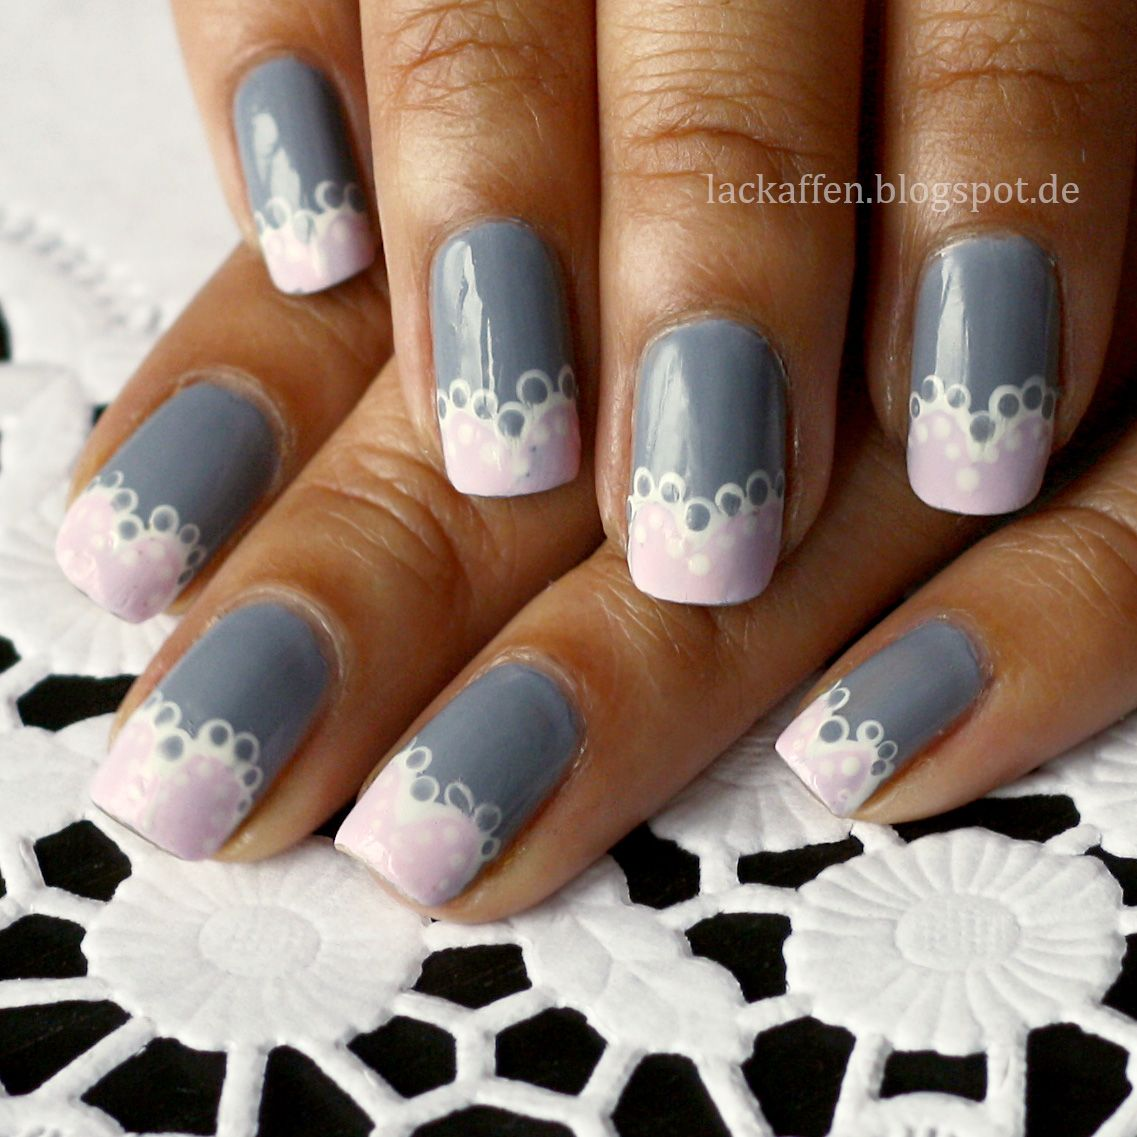 From Lackaffen: Lace Nail Art. Love these!